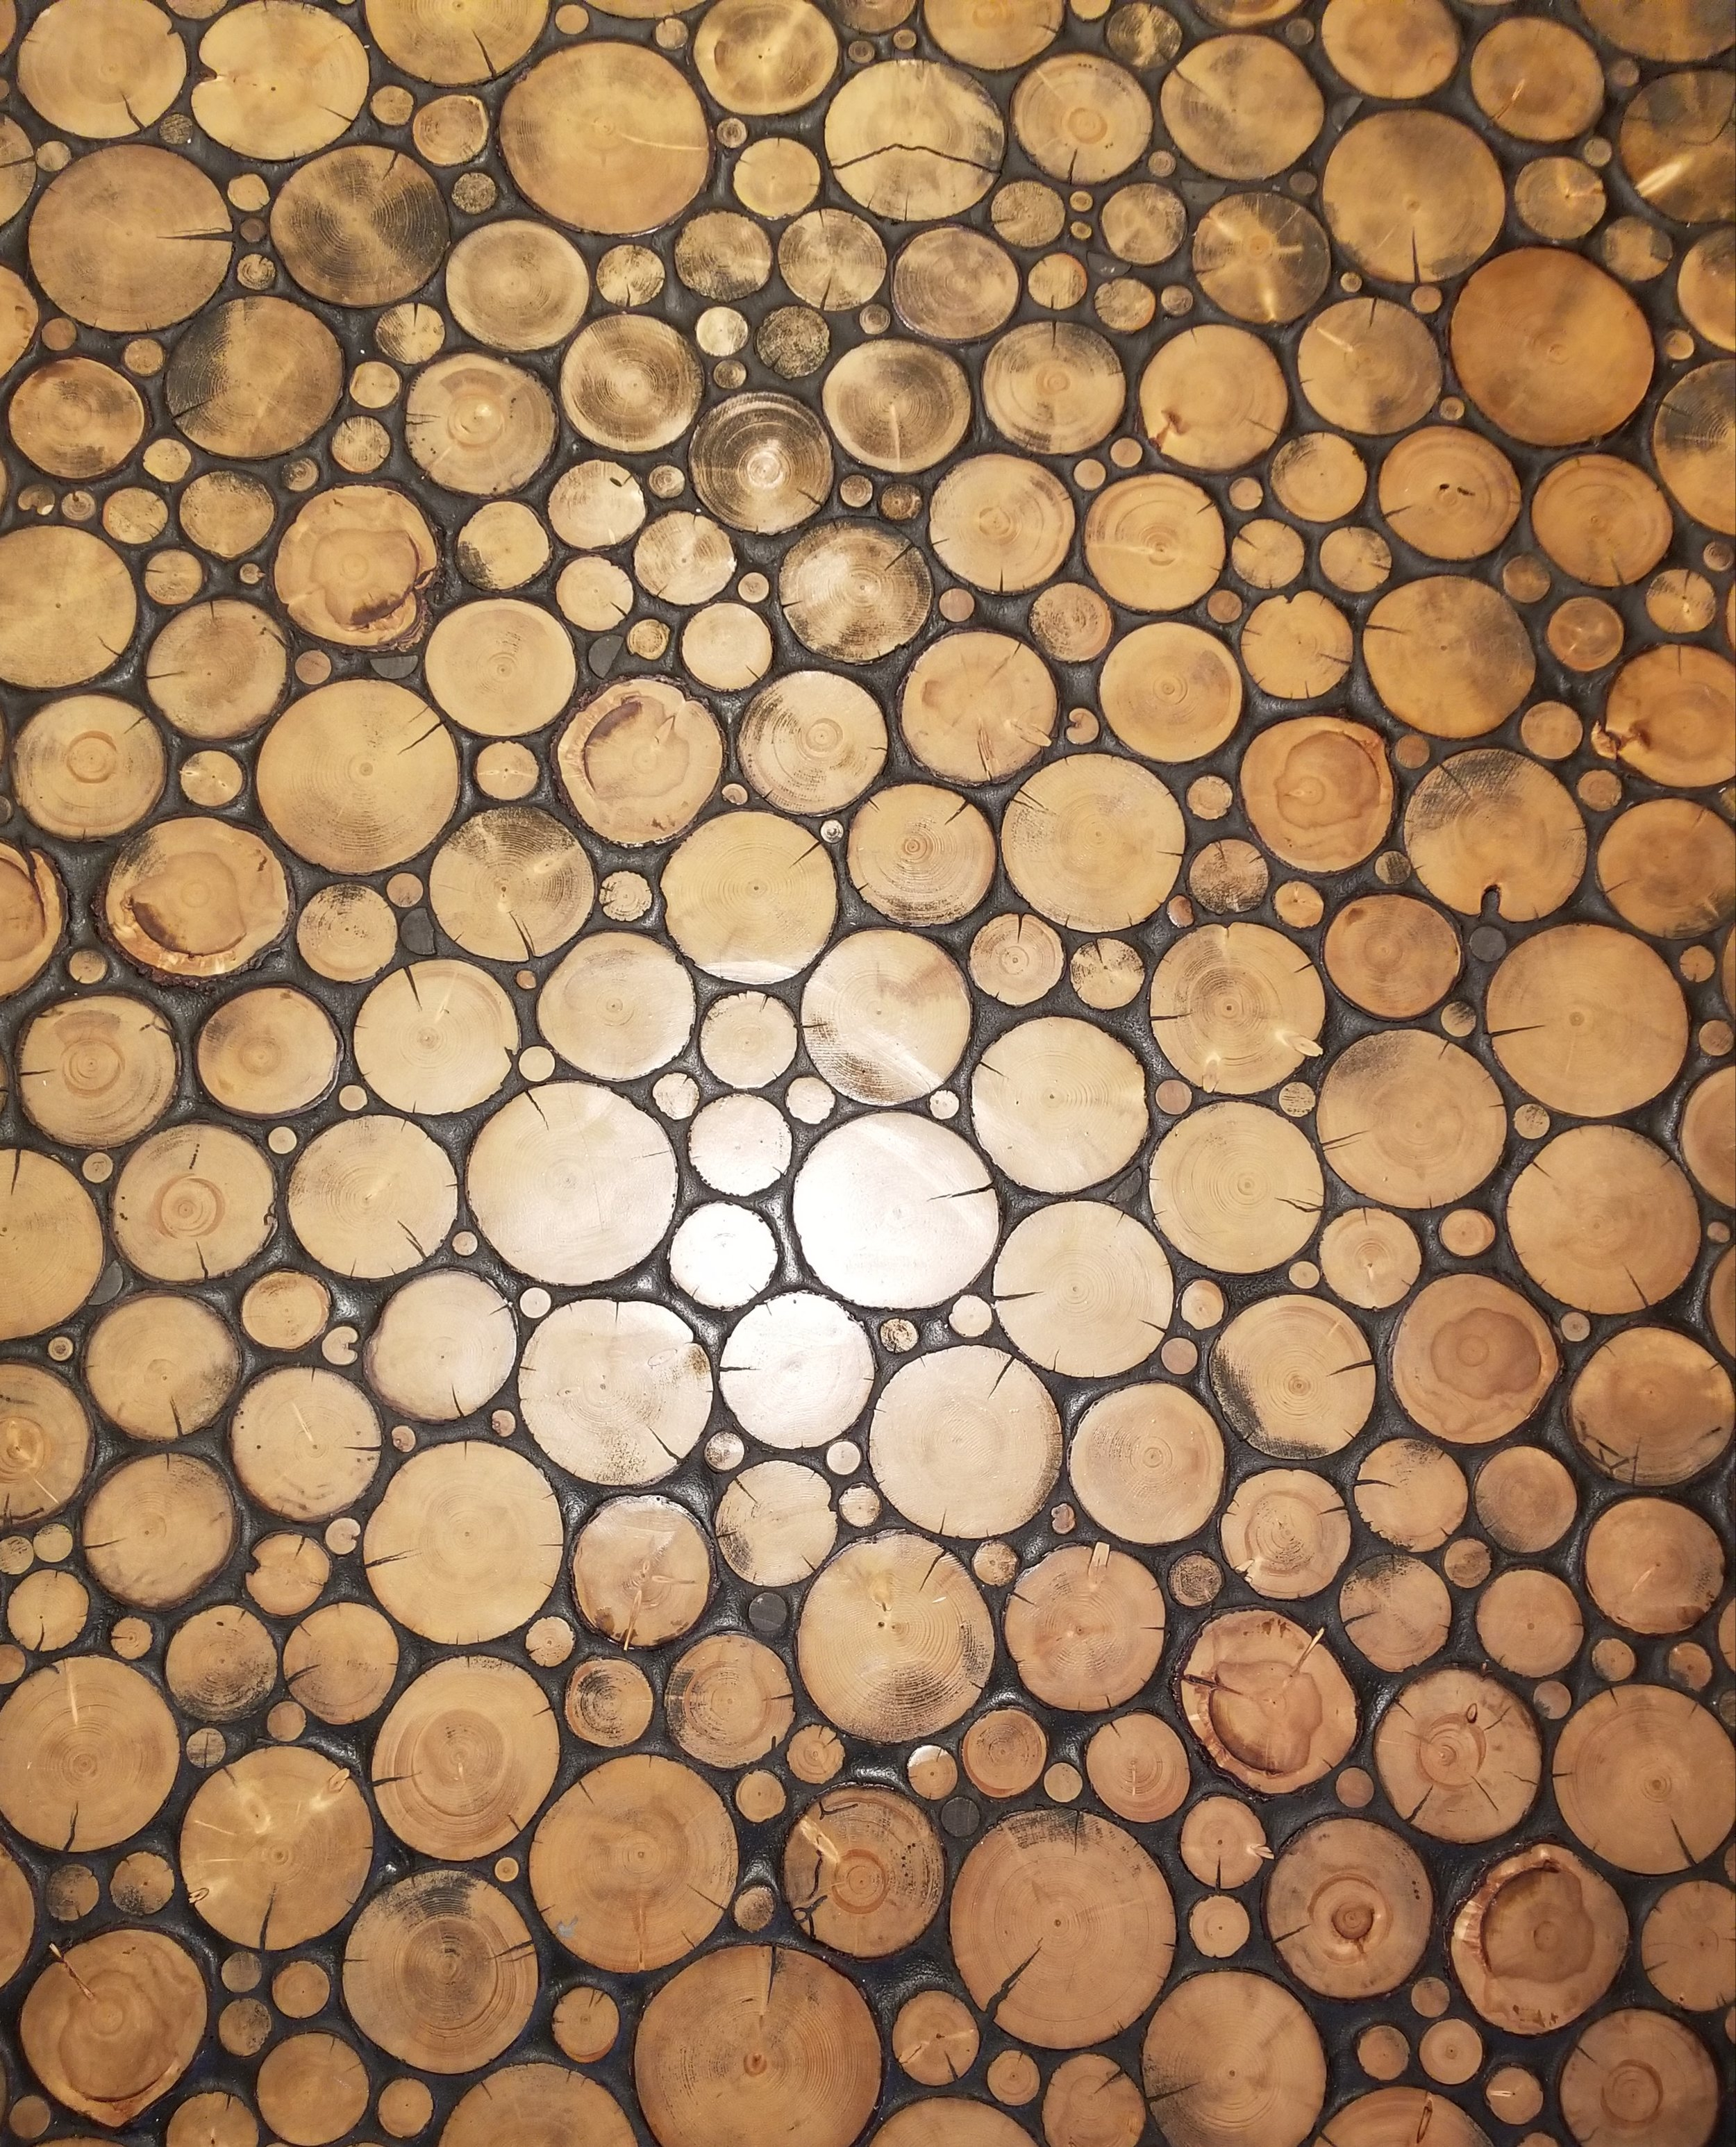 Close up of wood rounds floor with black grout